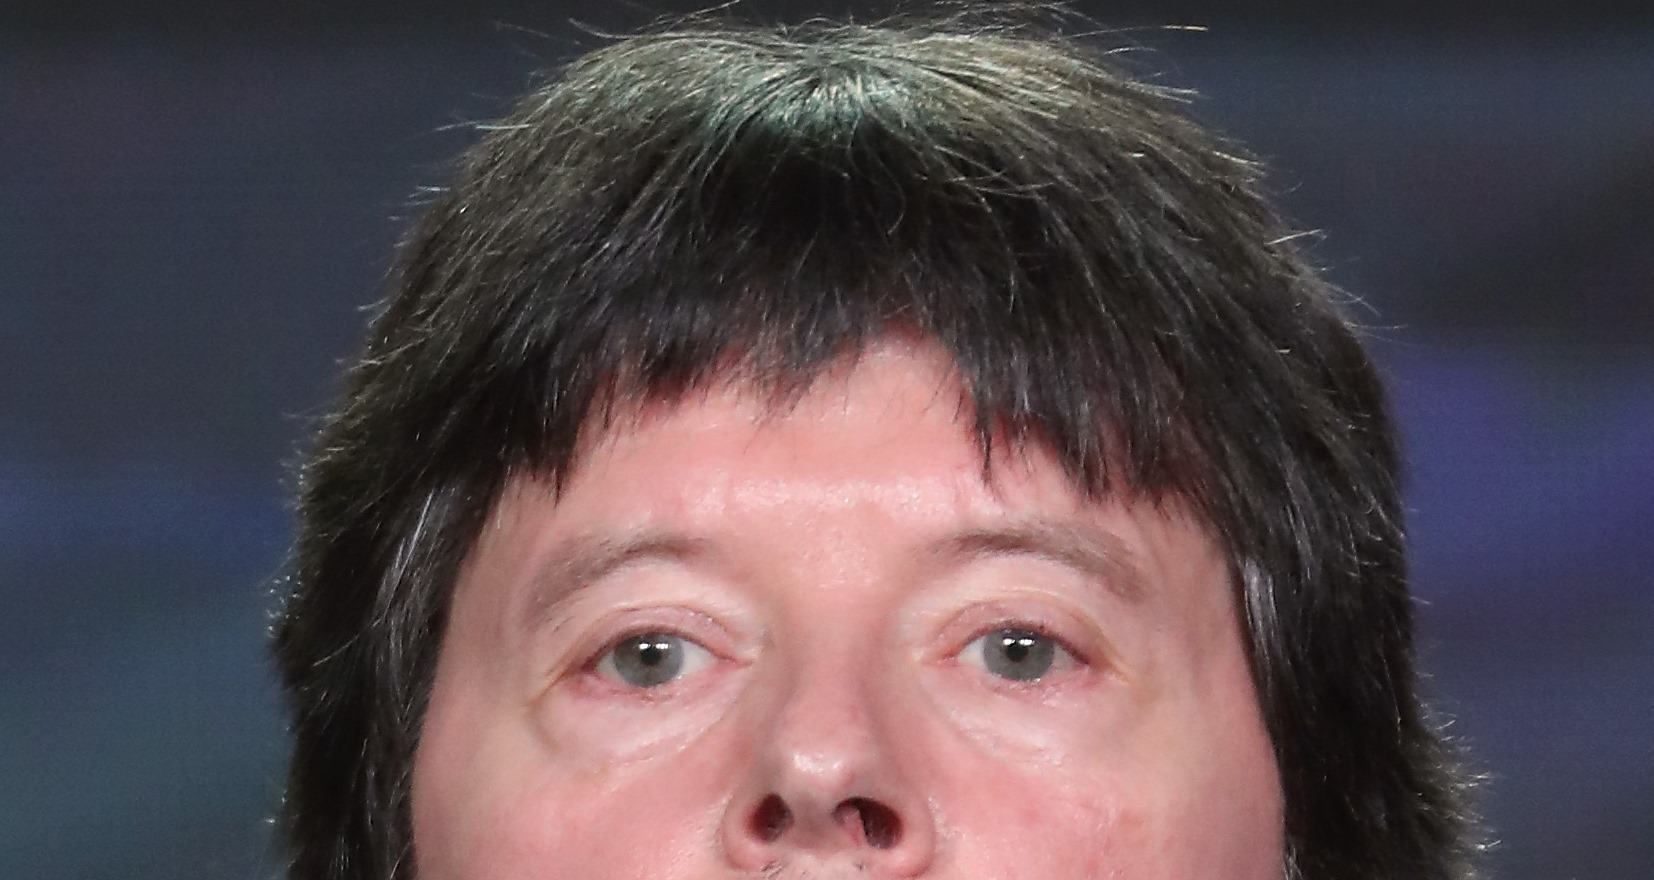 16 Intense Zoom Ins Of Ken Burns Hair That Are Strictly Platonic